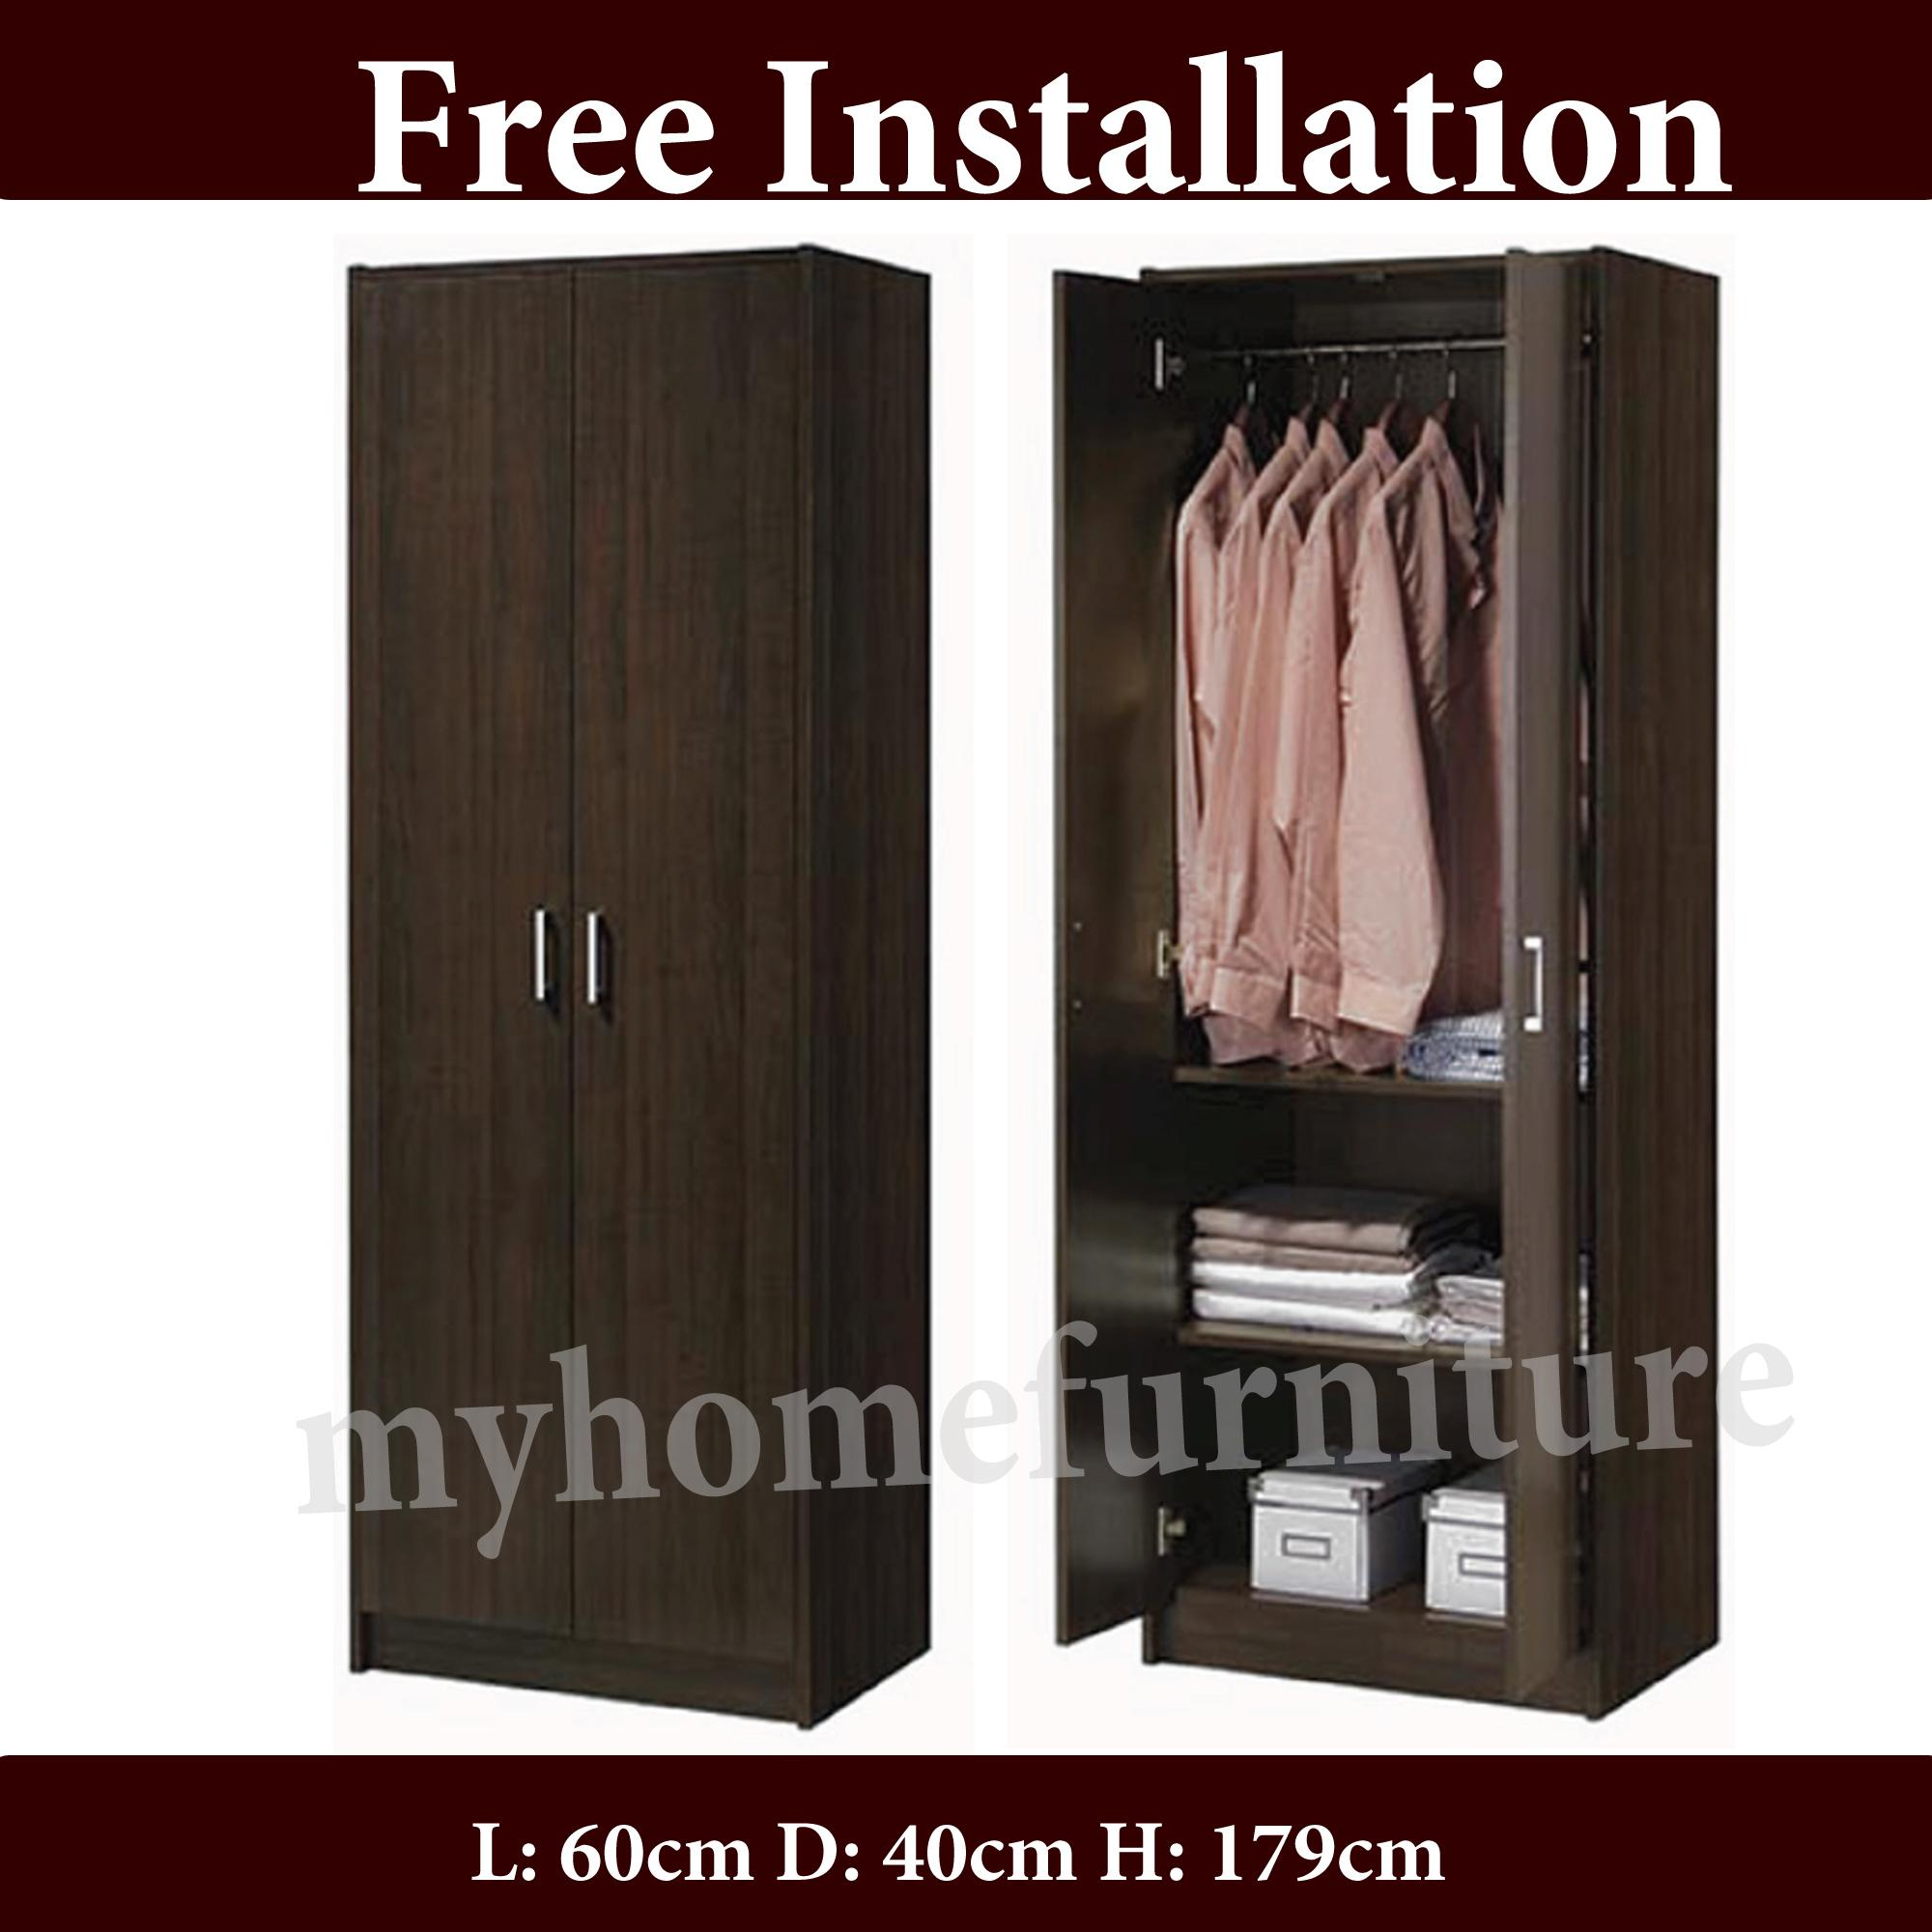 Jean 2 Doors Wardrobe With Shelfs and Hanging Rod (Free Delivery and Installation)